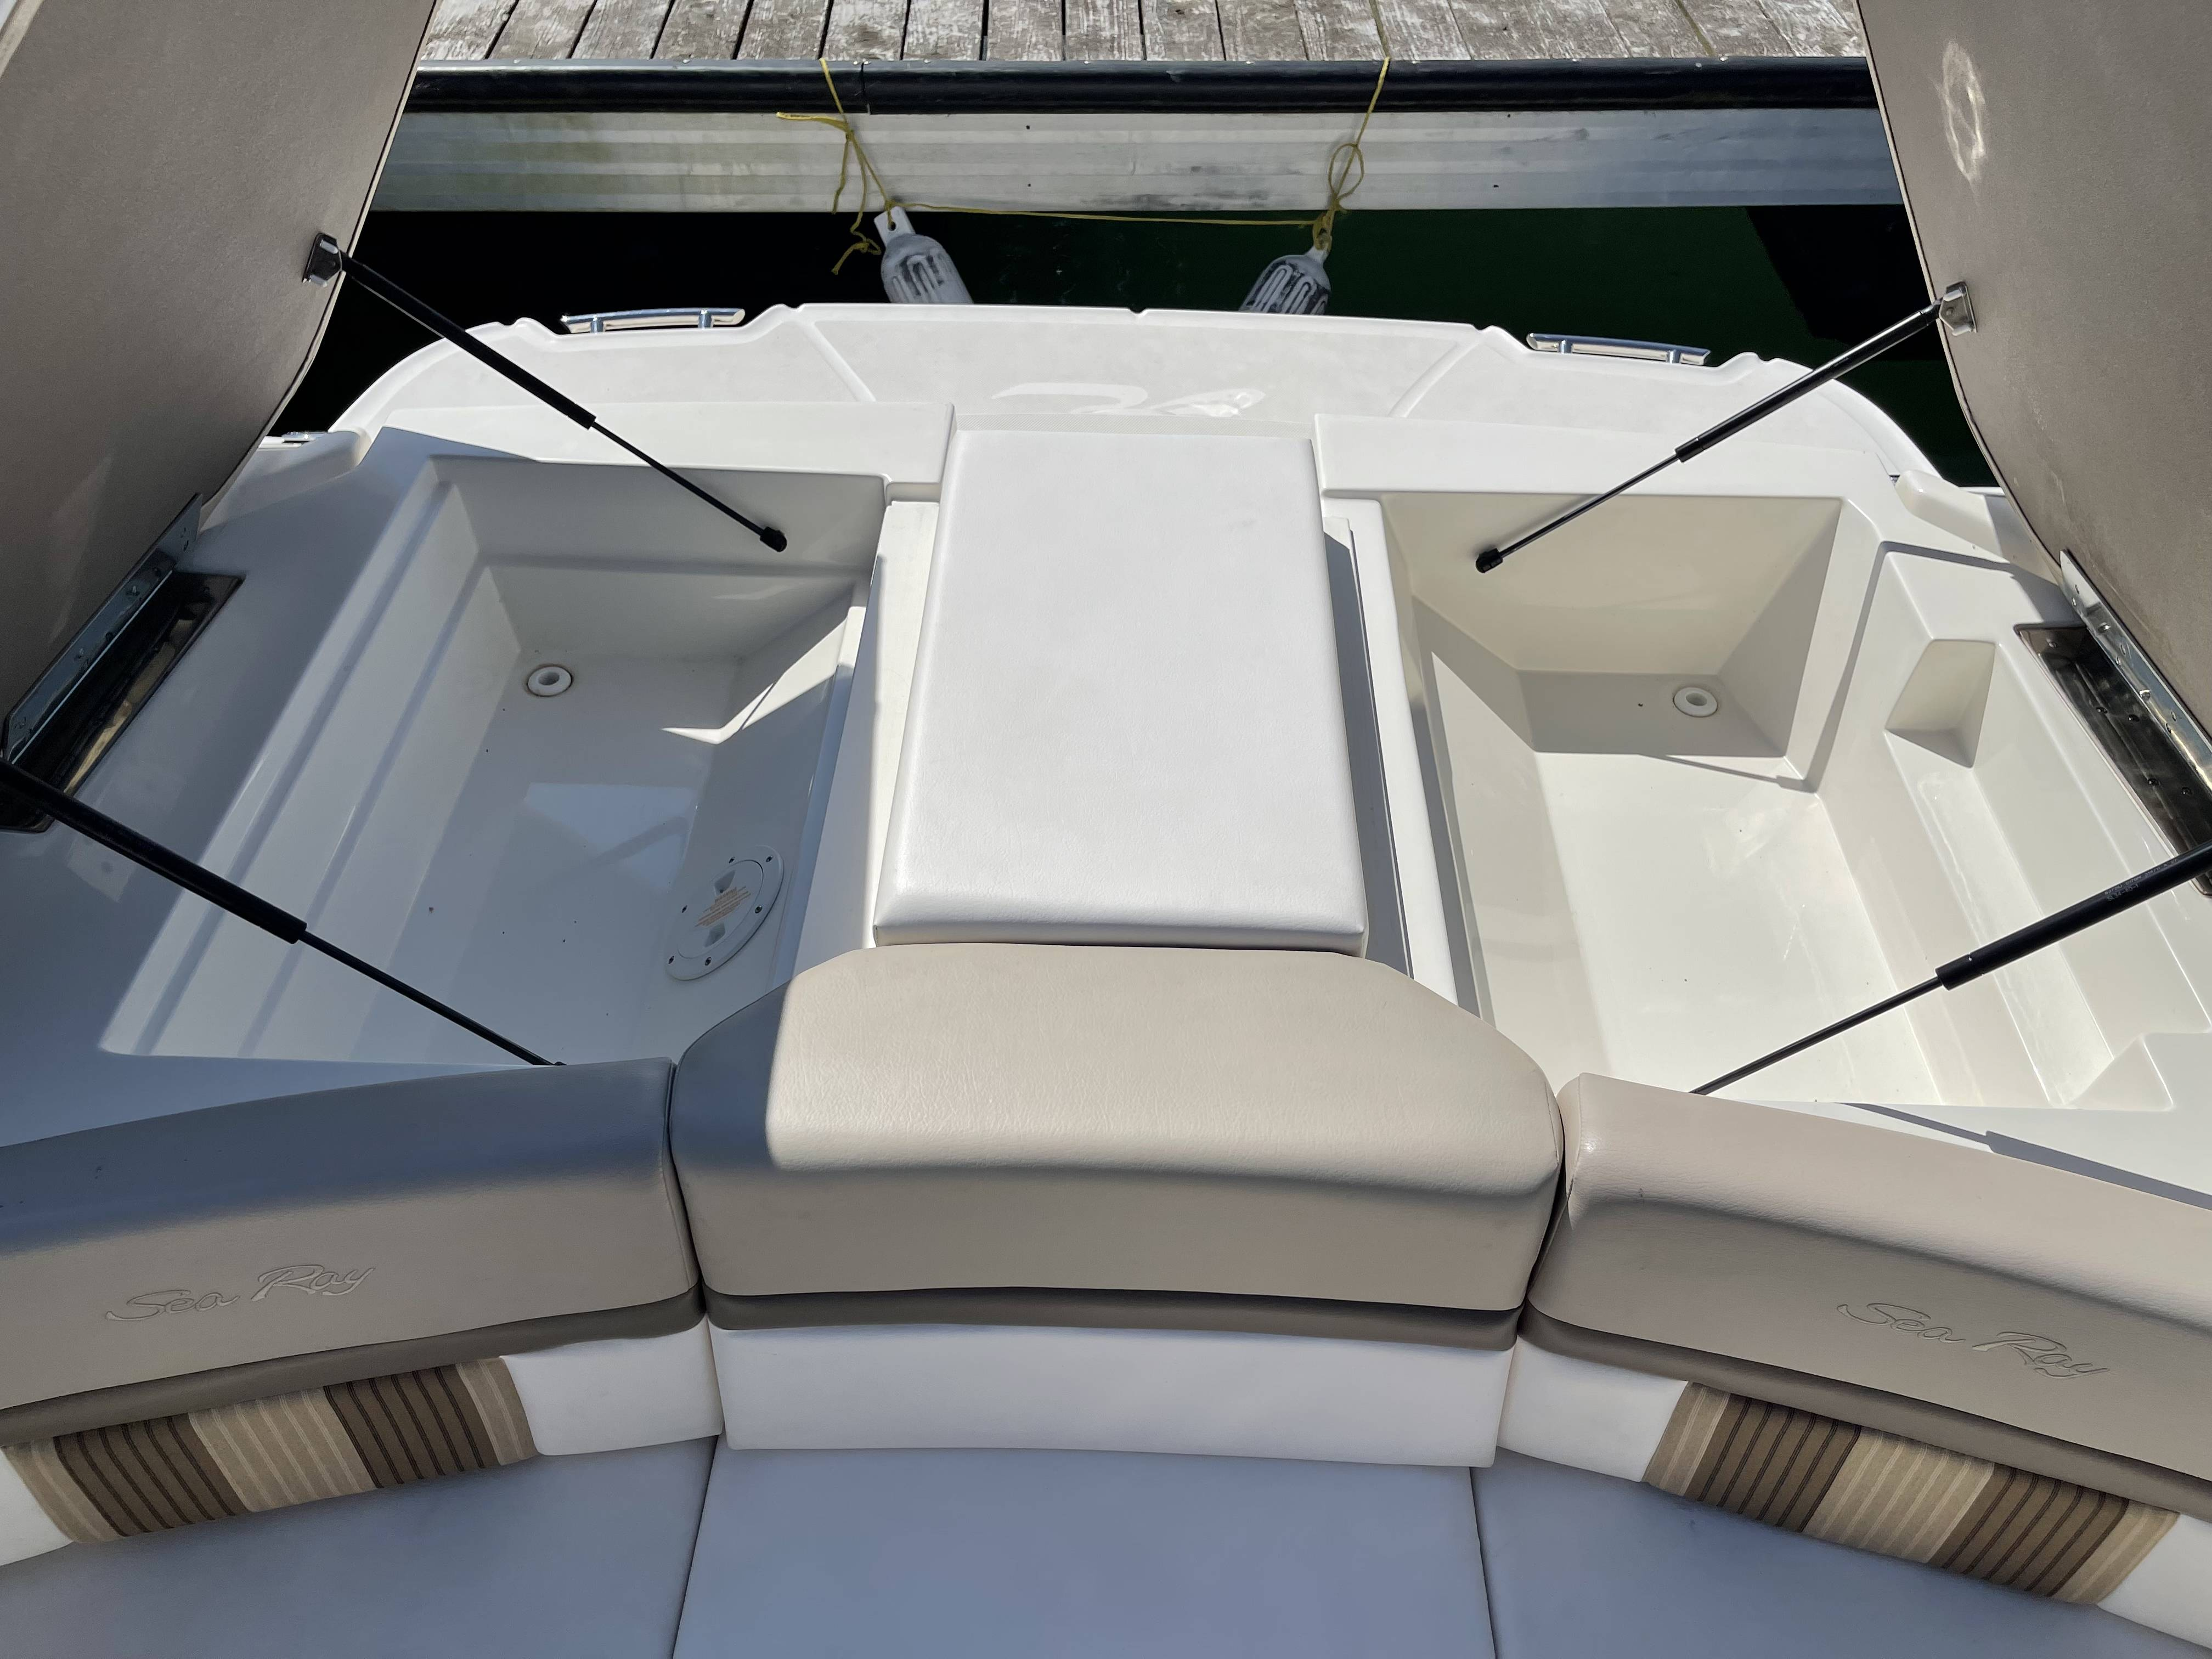 2012 Sea Ray boat for sale, model of the boat is 250 SLX & Image # 17 of 35